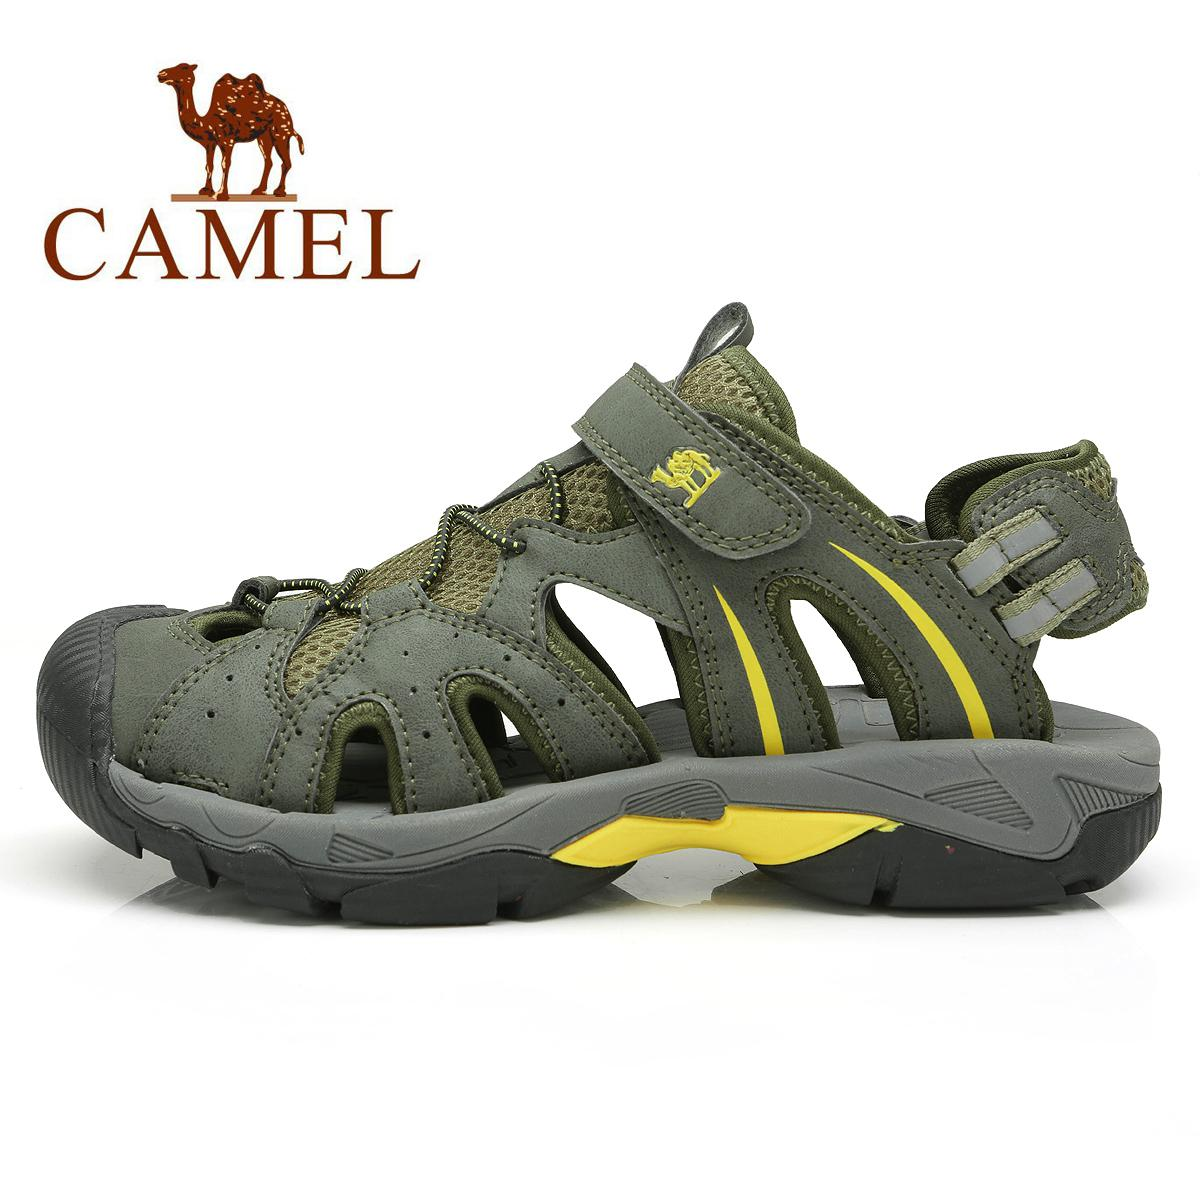 camel shoes distributor philippines islands beaches 694570